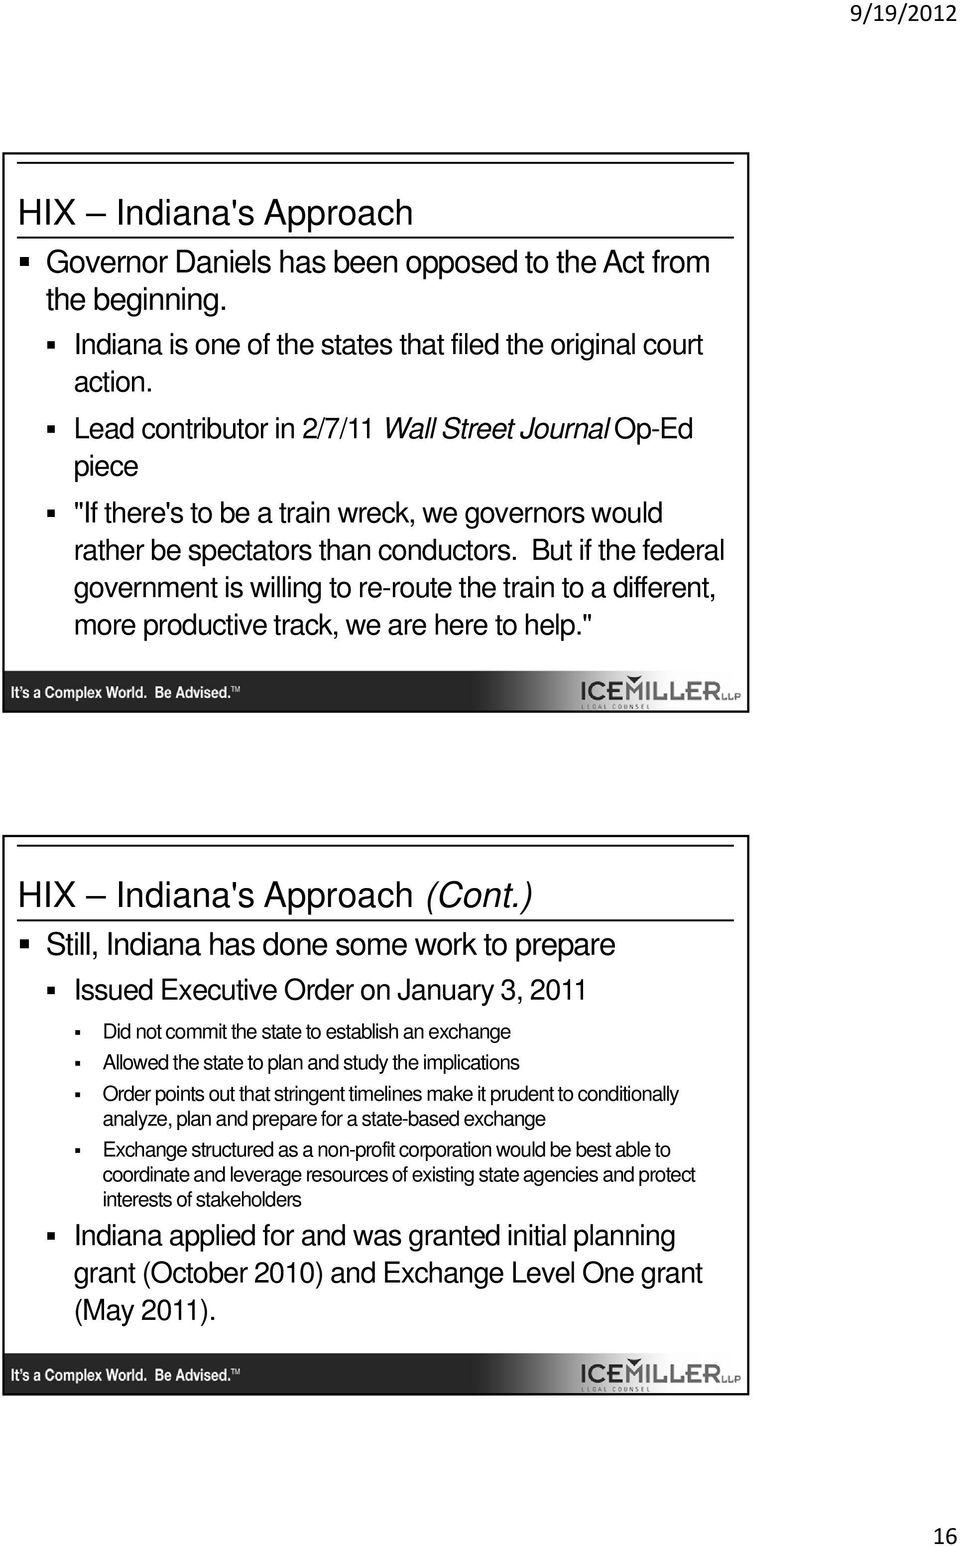 "But if the federal government is willing to re-route the train to a different, more productive track, we are here to help."" HIX Indiana's Approach (Cont."